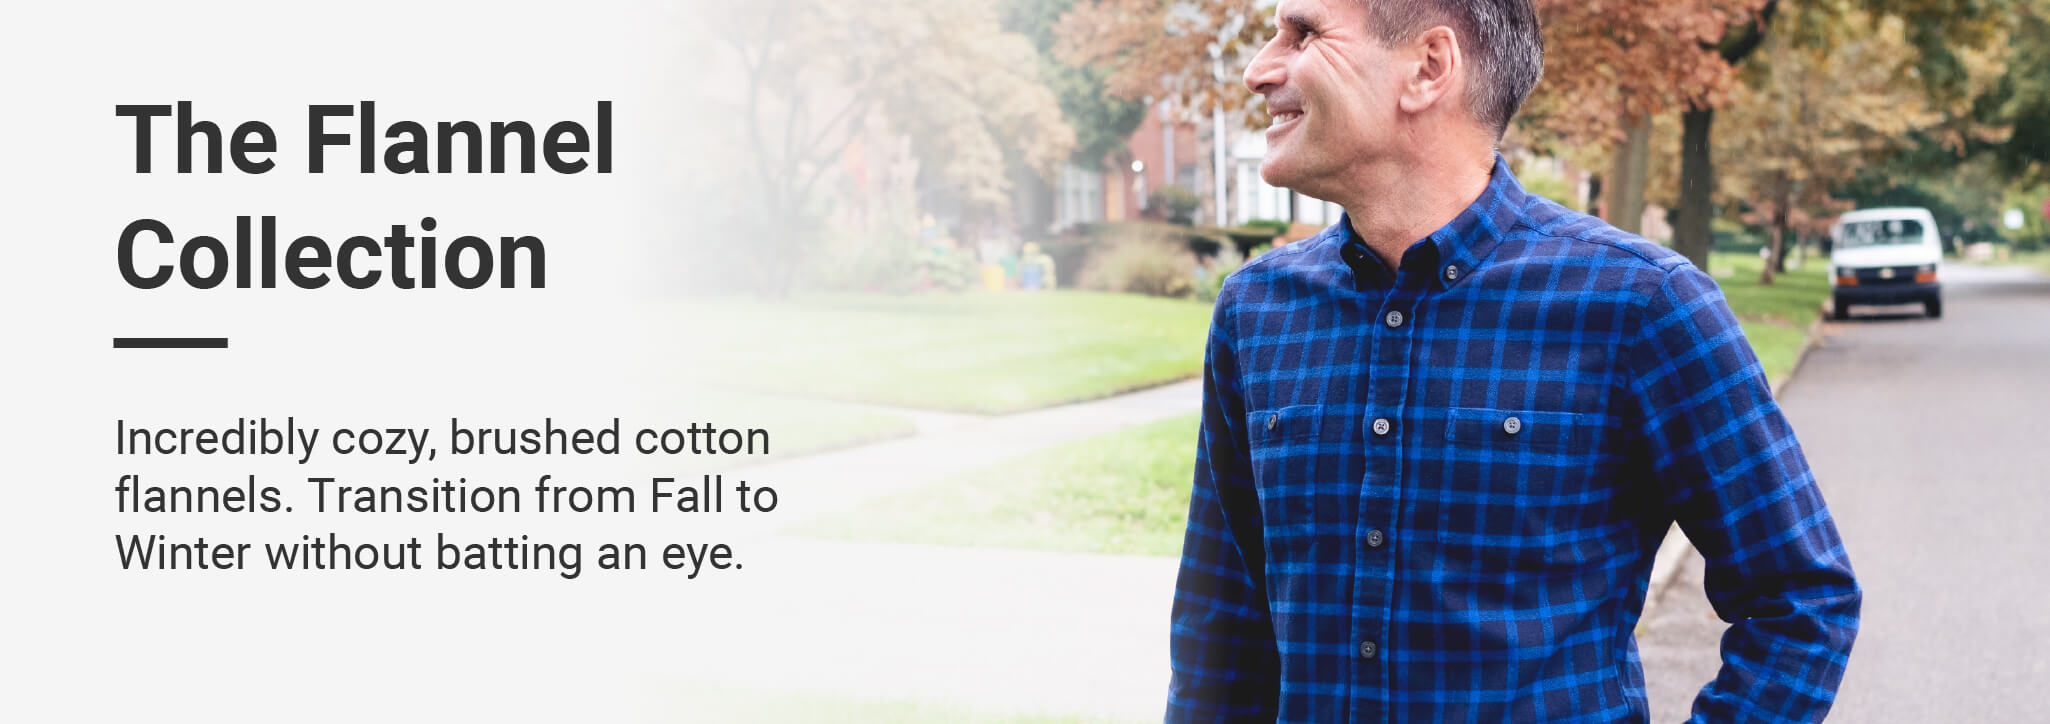 Incredibly cozy, brushed cotton flannels. Transition from Fall to Winter without batting an eye. Long sleeves, Slim and Standard fits.